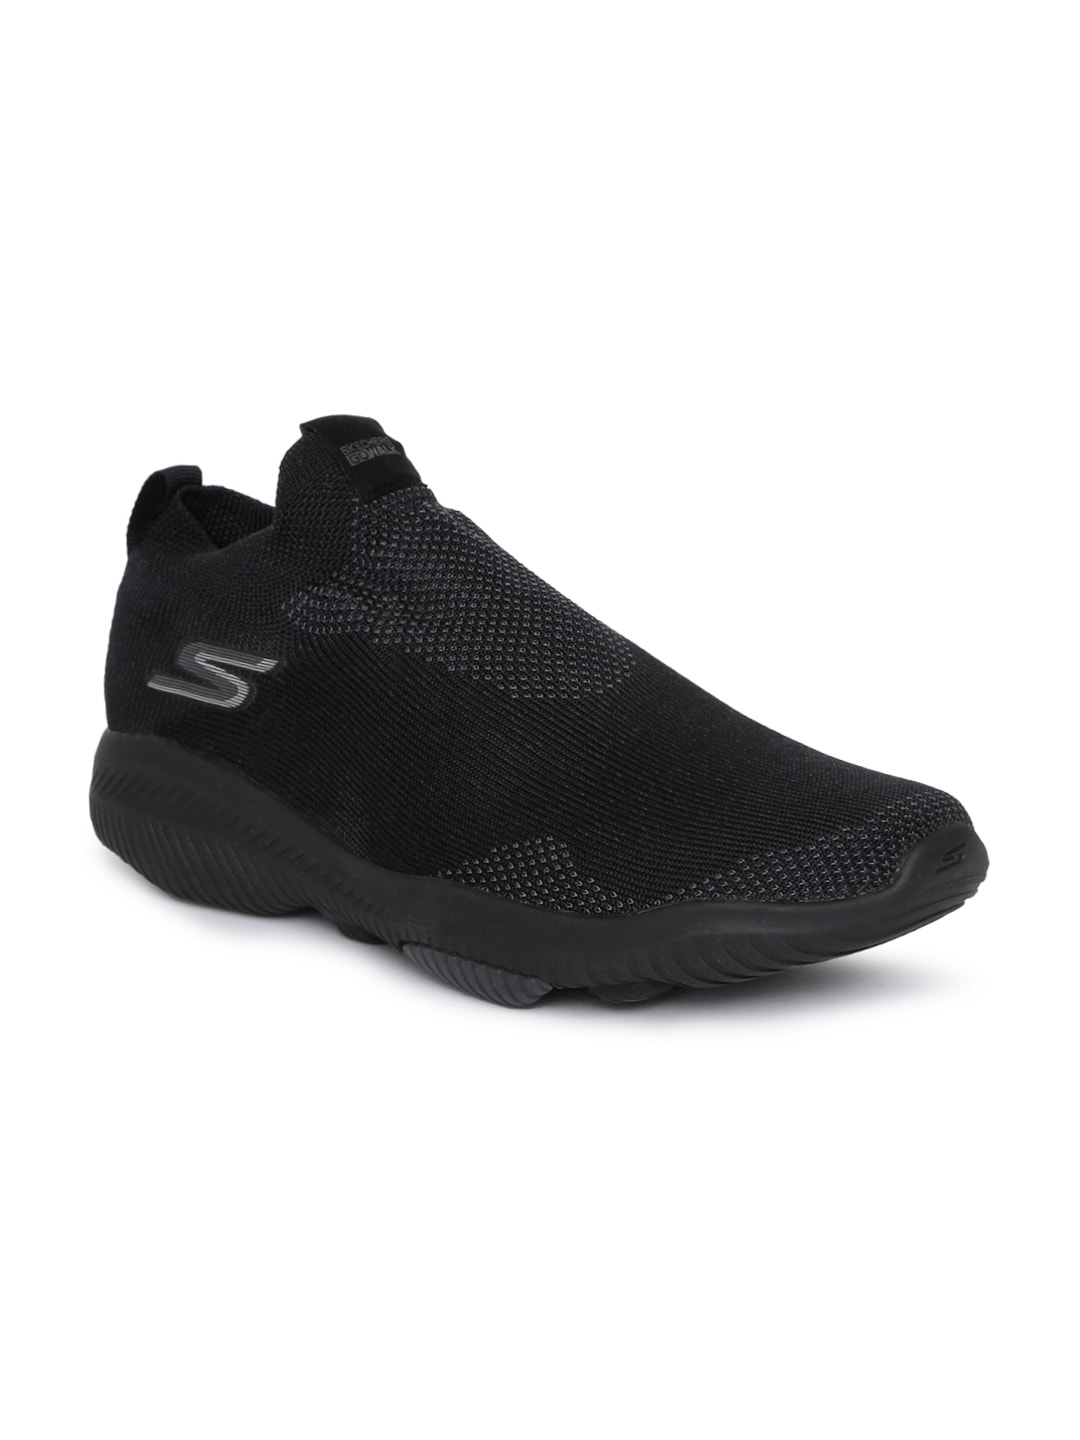 skechers men go walk